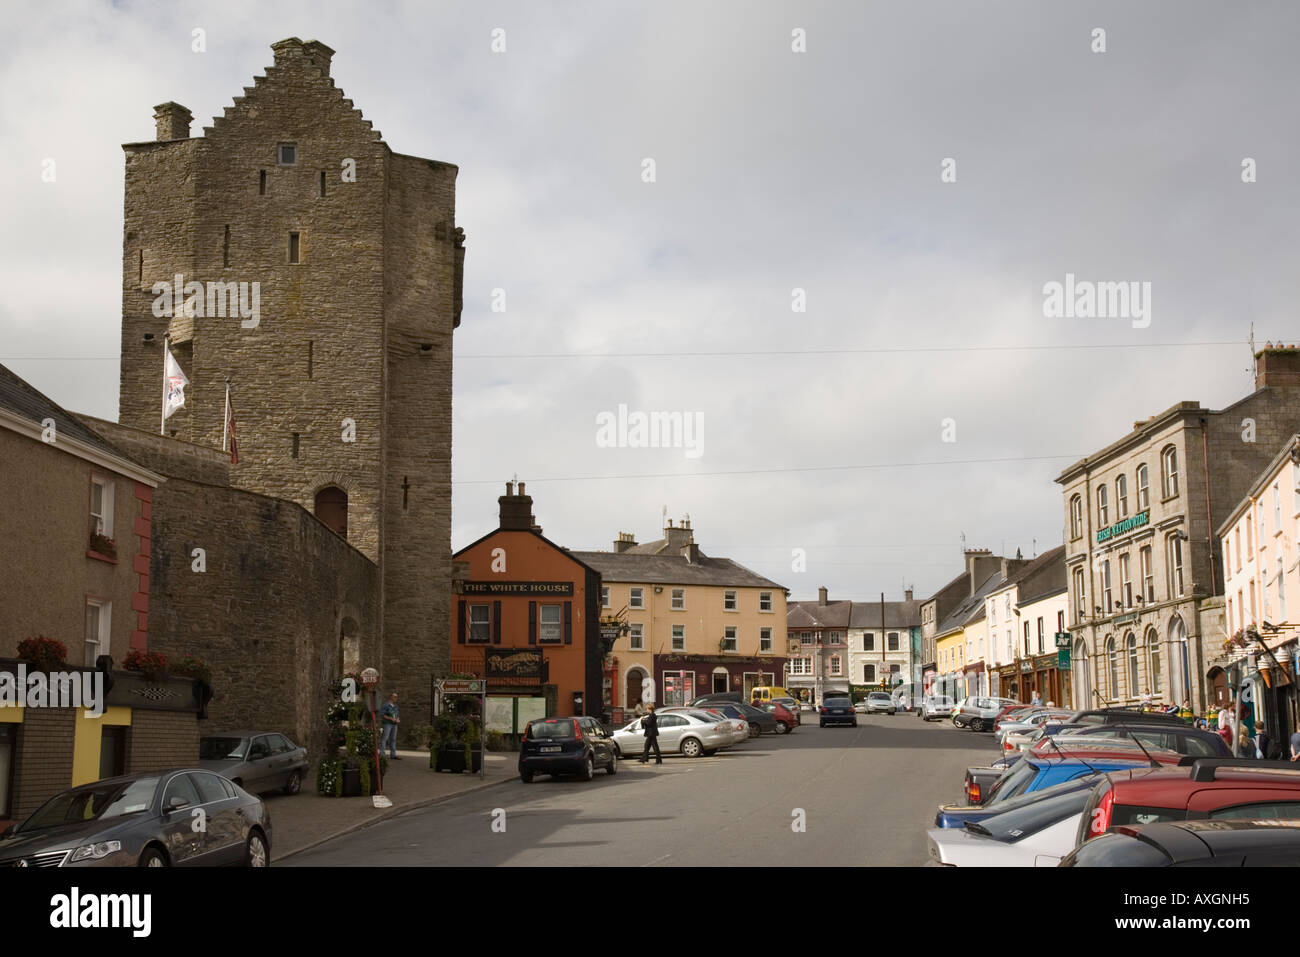 County Tipperary - Wikipedia